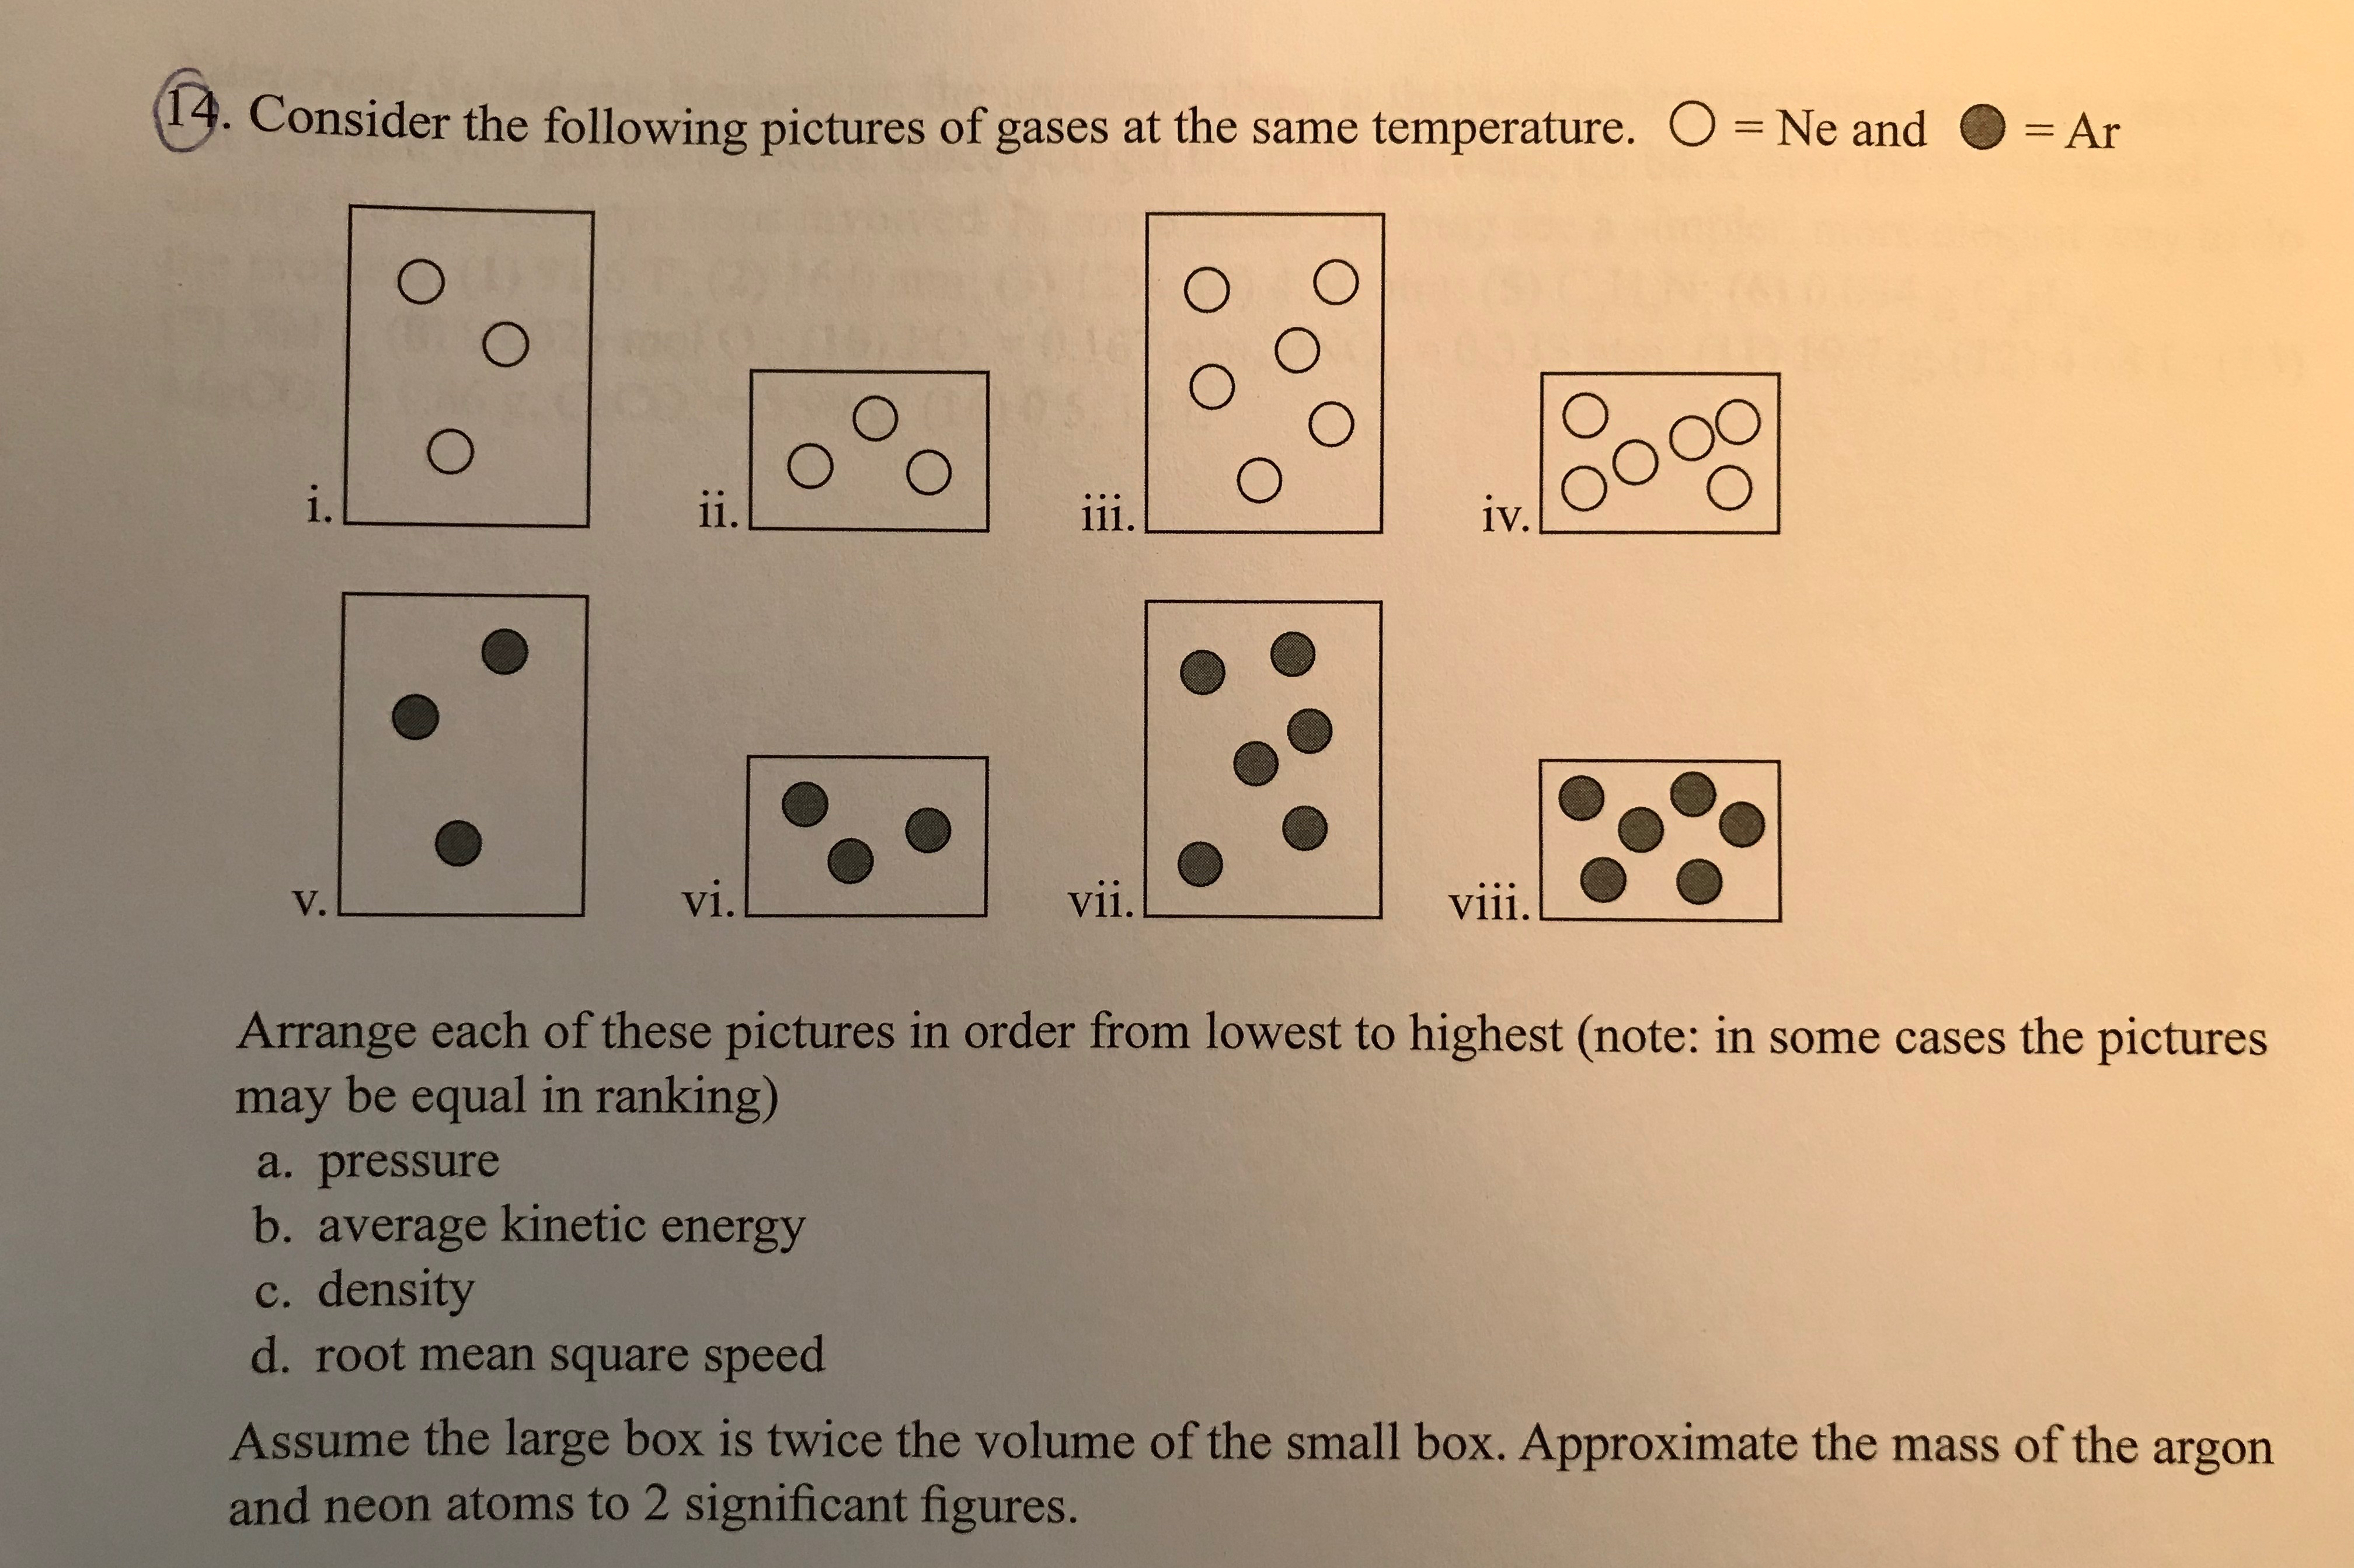 13. Consider the following pictures of gases at the same temperature. O Ne and -Ar = Ar . 1V. V. V1 vii. Arrange each of these pictures in order from lowest to highest (note: in some cases the pictures may be equal in ranking) a. pressure b. average kinetic energy c. density d. root mean square speed Assume the large box is twice the volume of the small box. Approximate the mass of the argon and neon atoms to 2 significant figures.